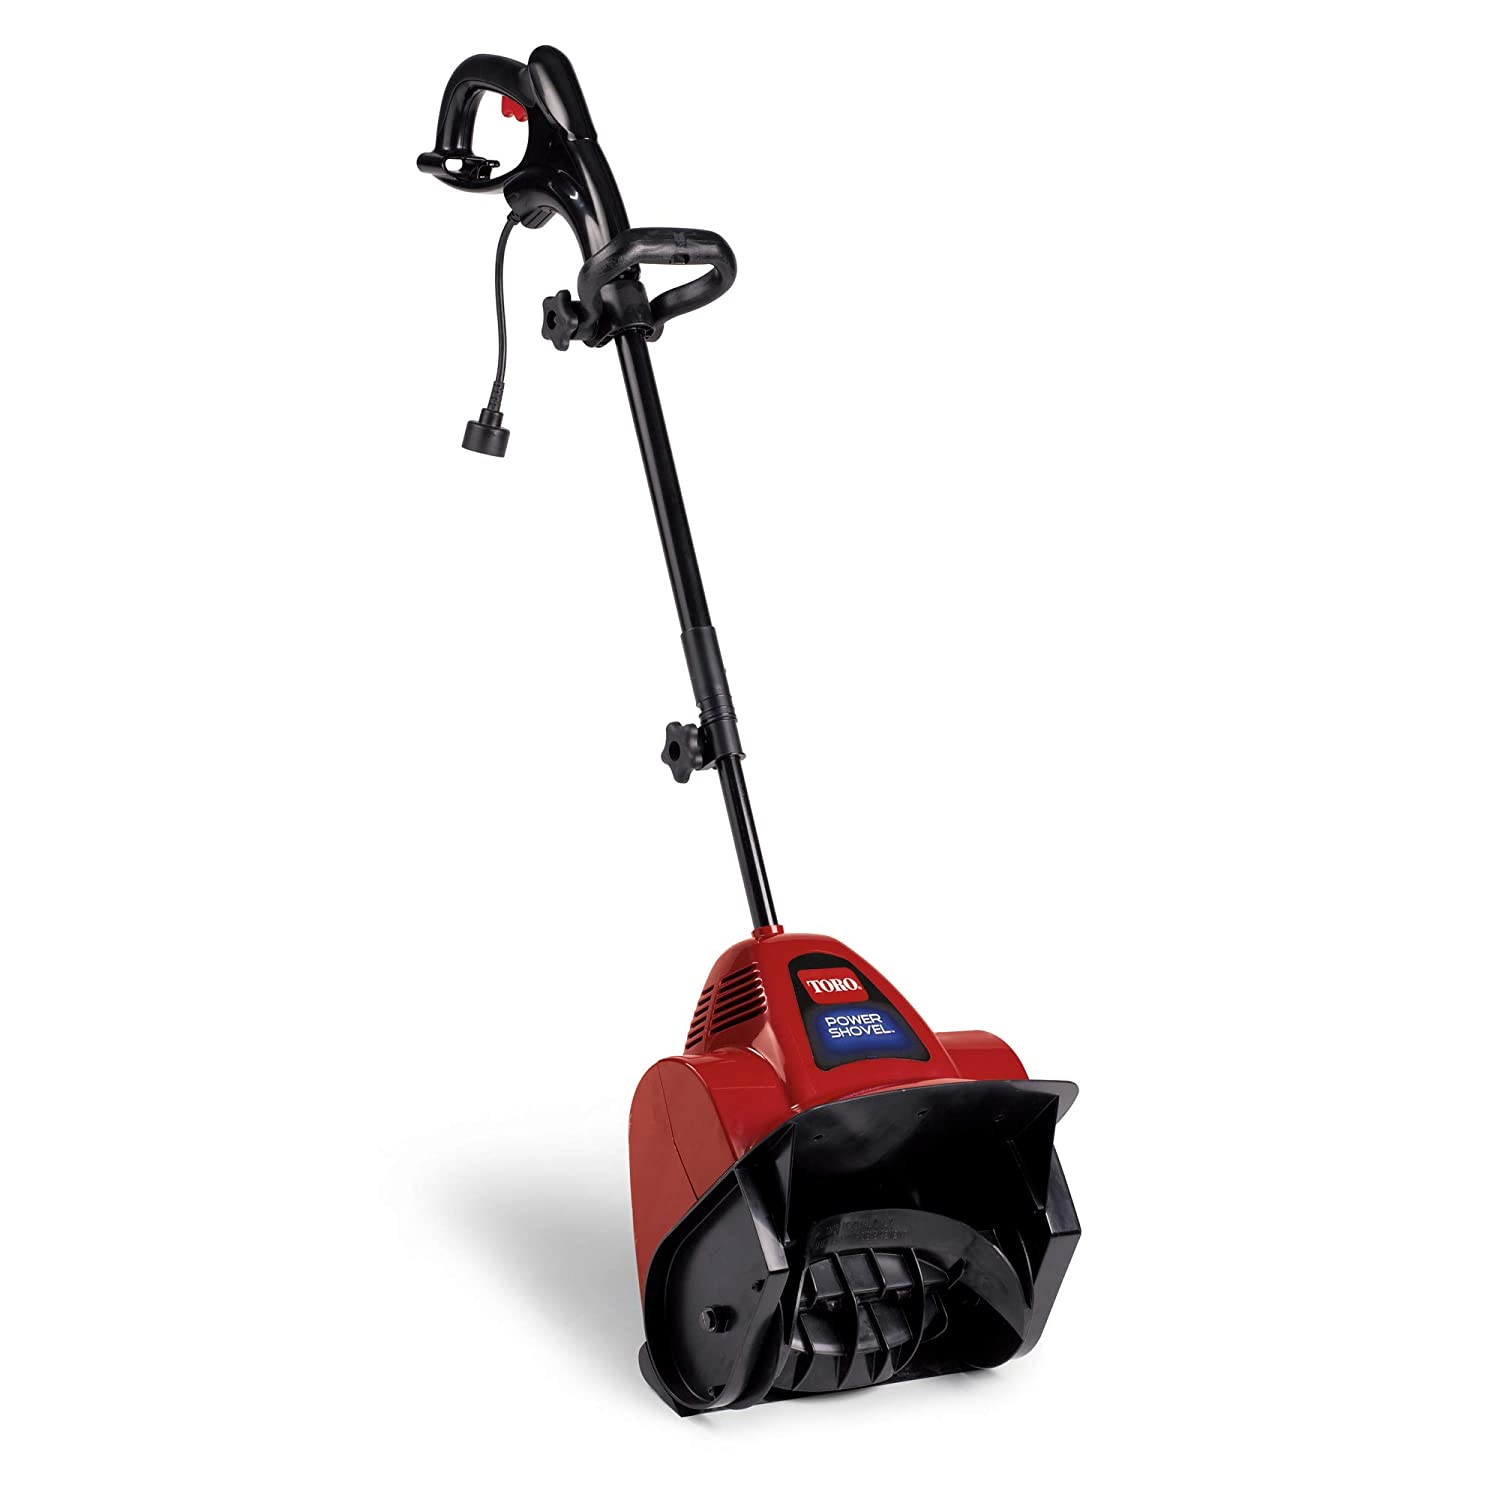 Top 10 Best Snow Thrower (2020 Reviews & Buying Guide) 4